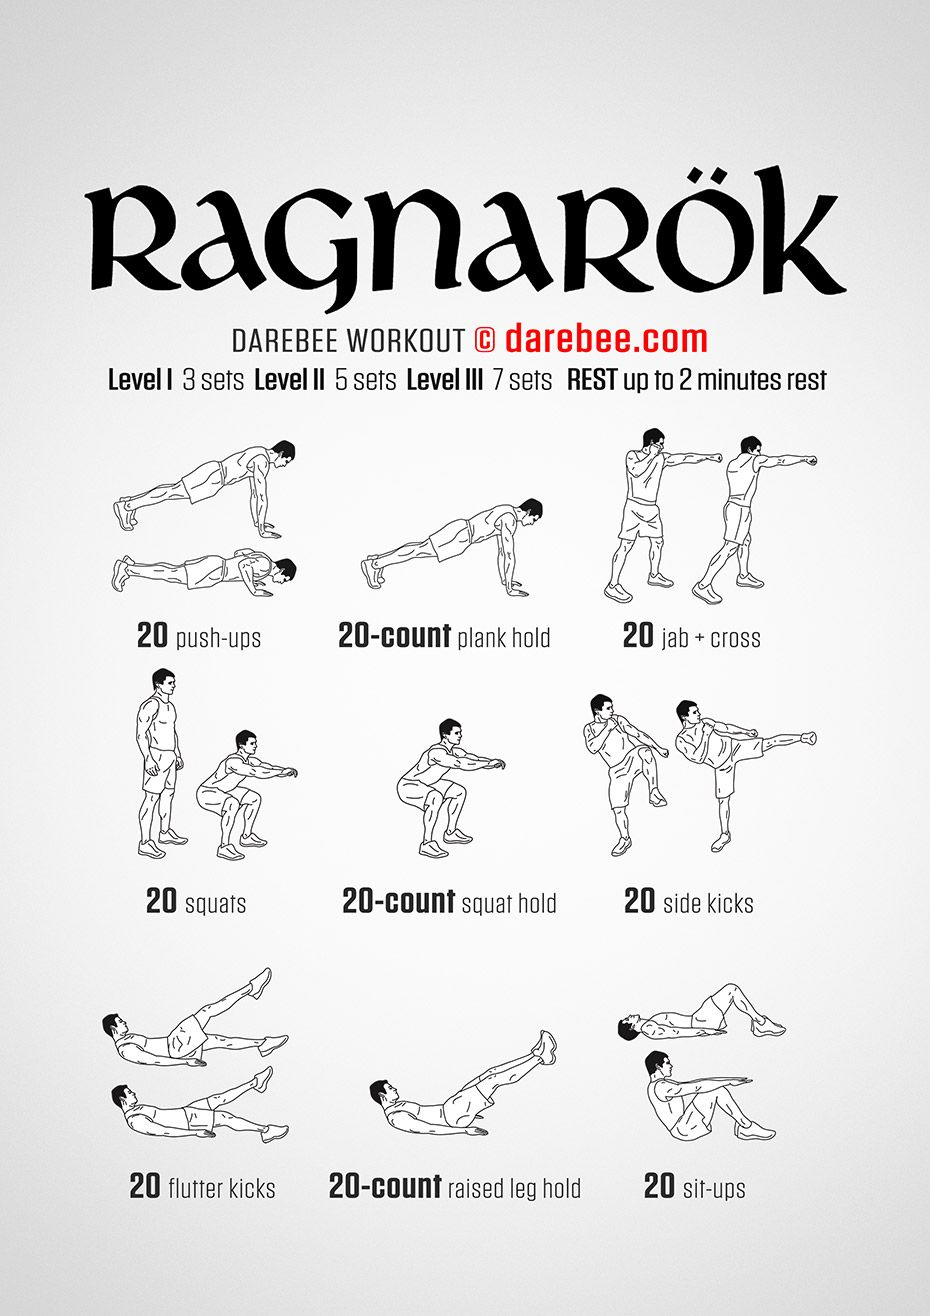 Bodybuilding diet with images superhero workout